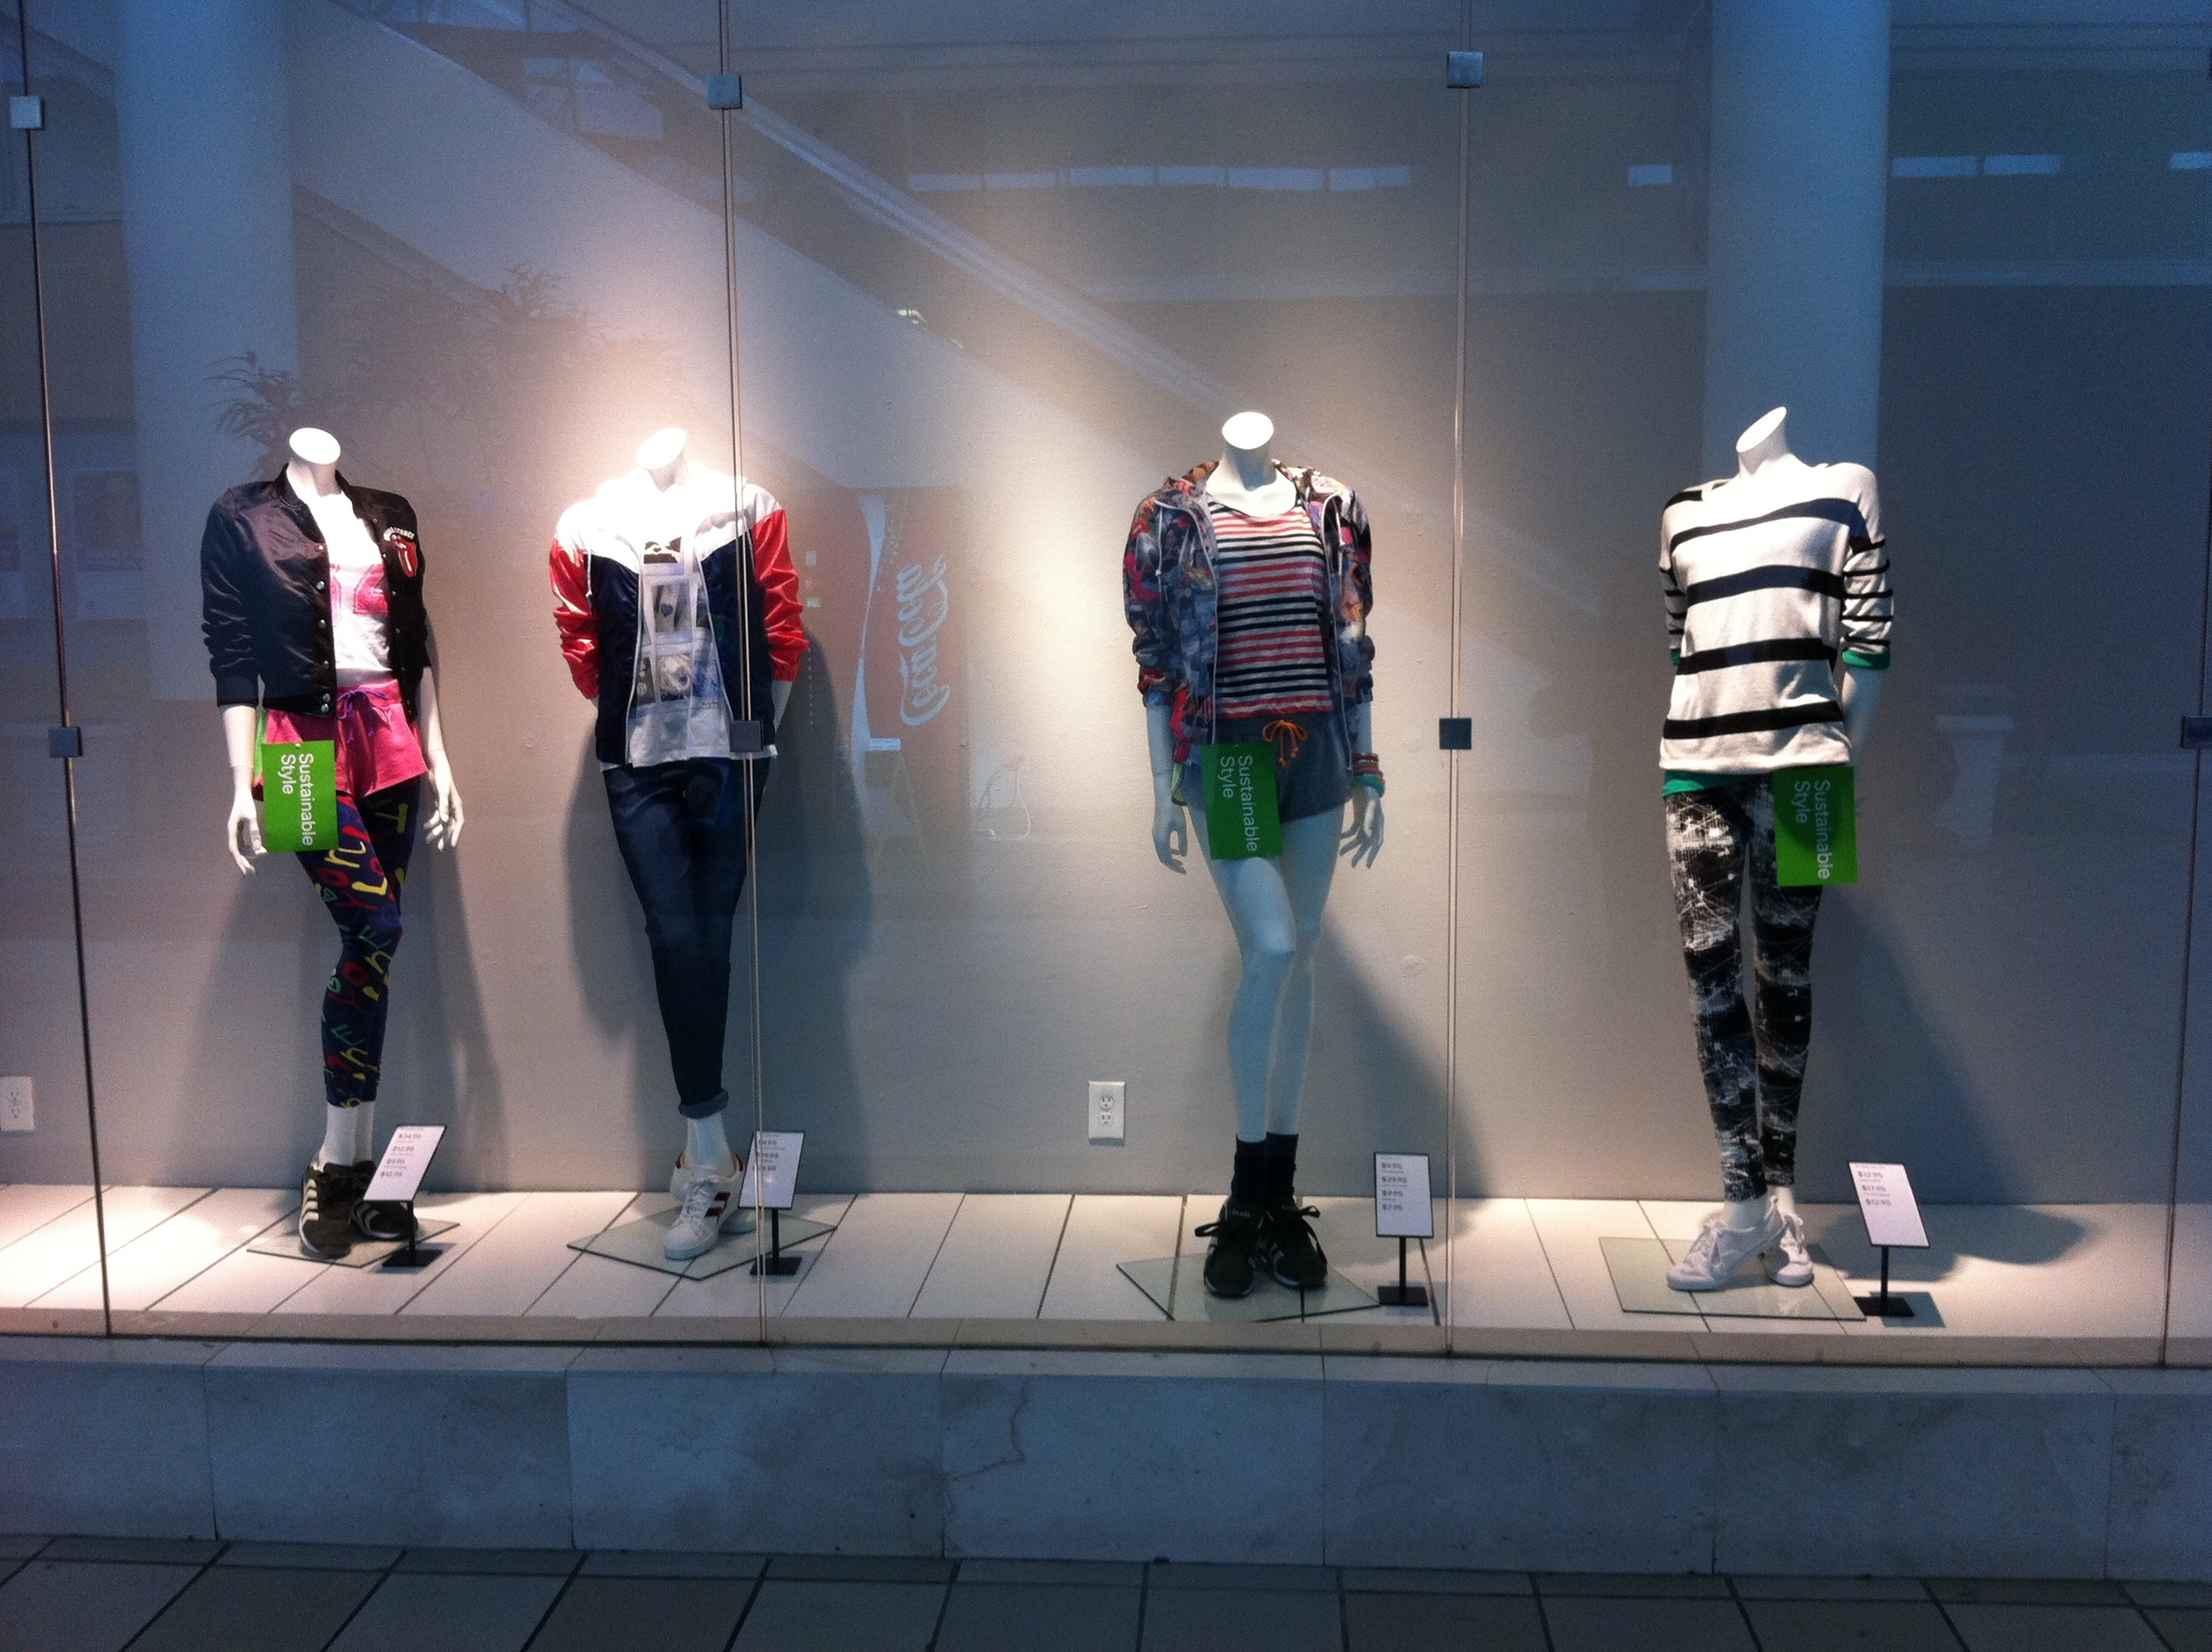 Love Life and Lollipops- H&M Showcasing Their Sustainable Fashion Options